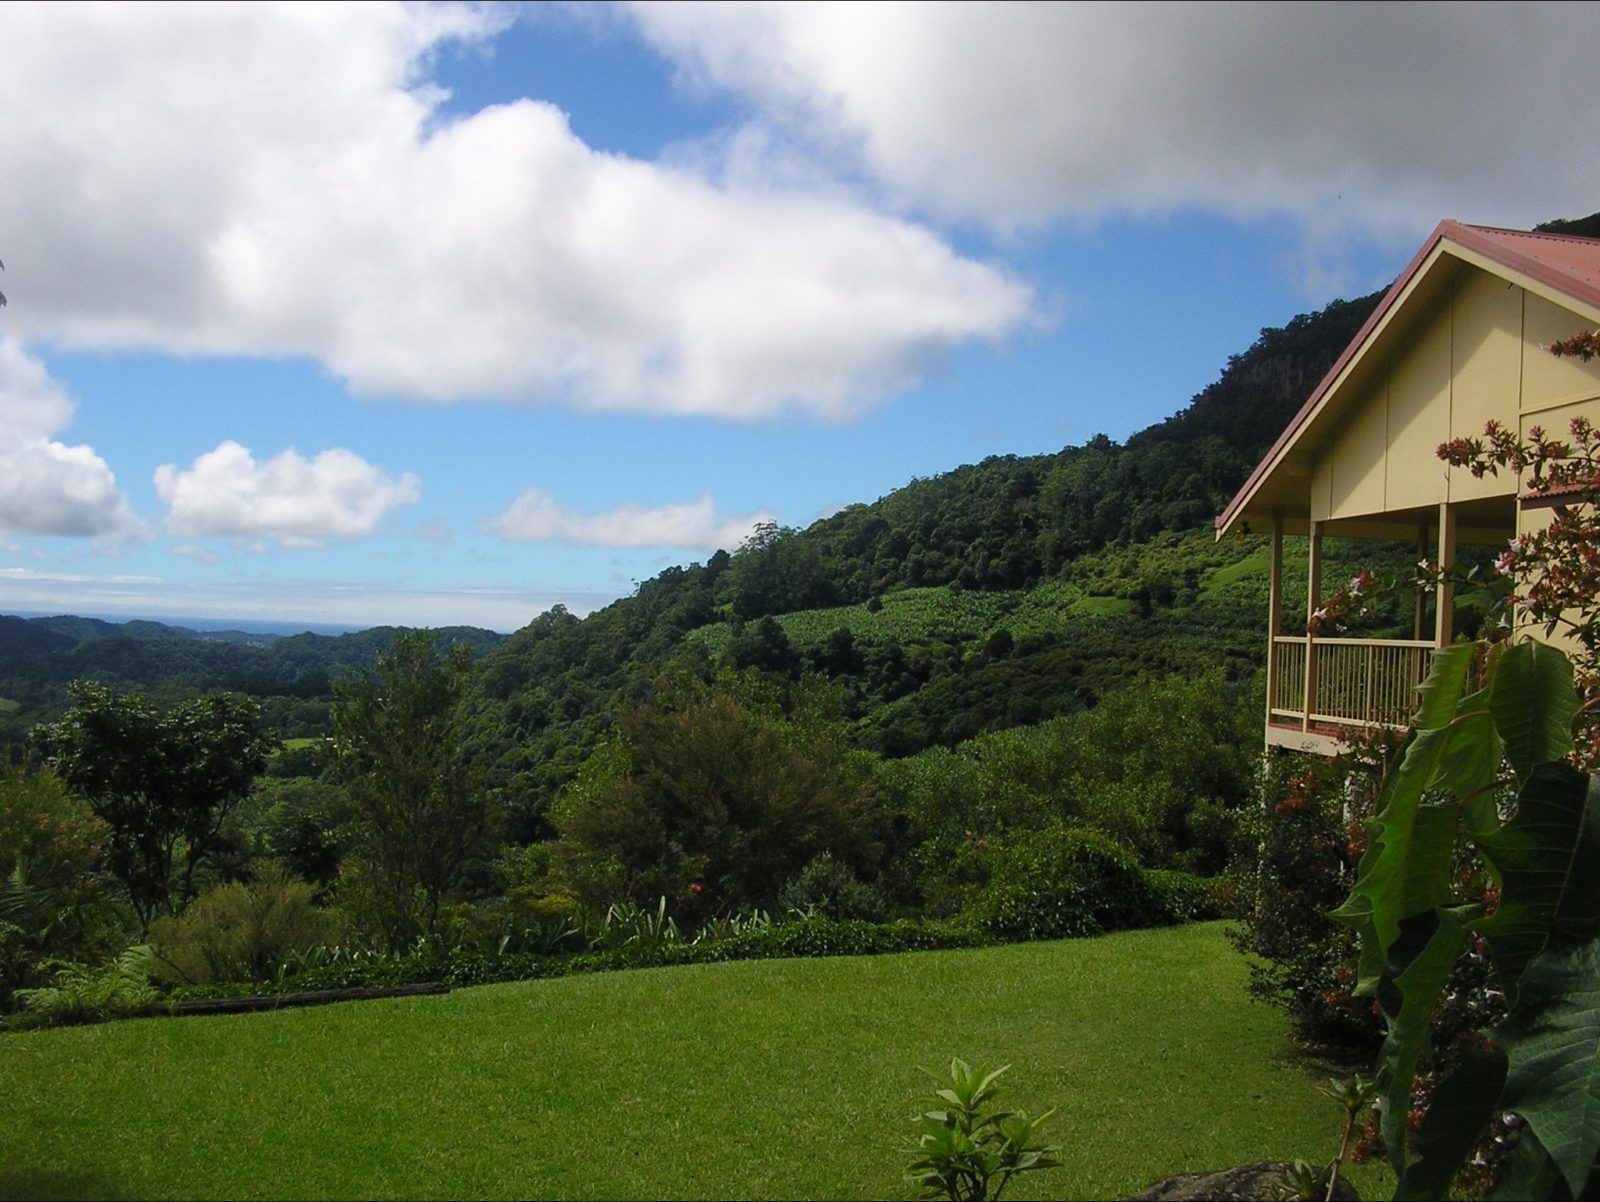 Valley views from lawn and verandah of guesthouse